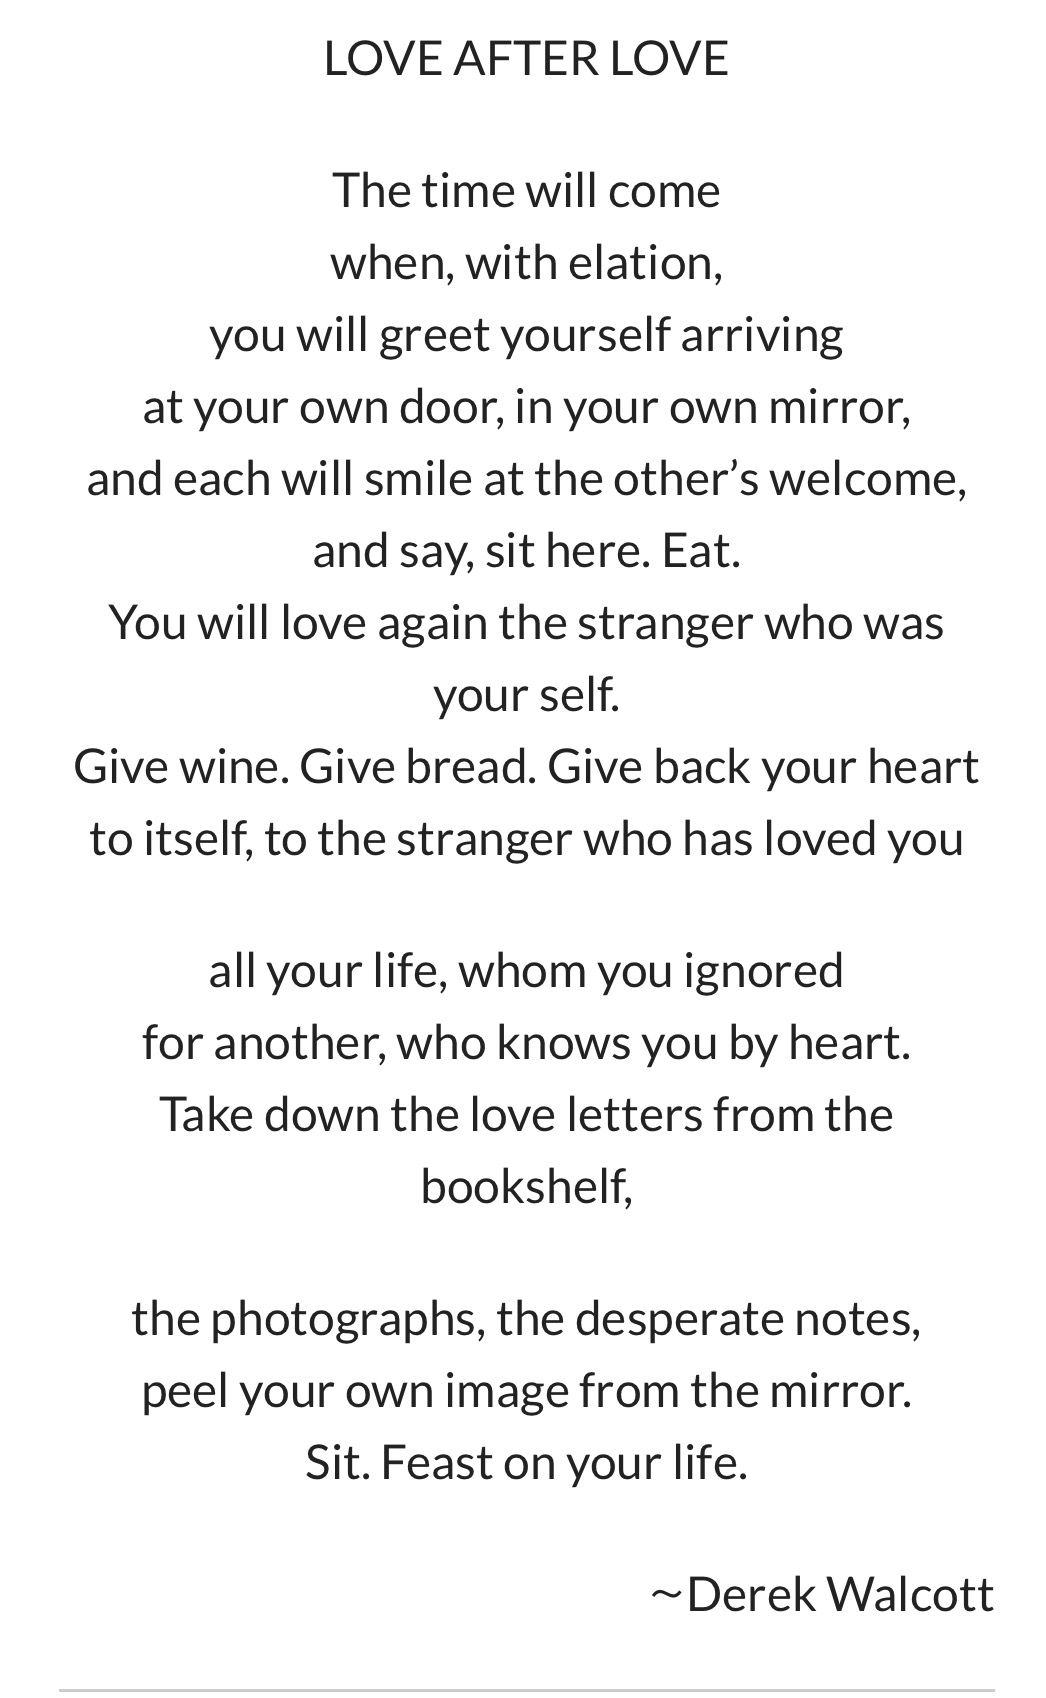 POEMS Love and Inspiration